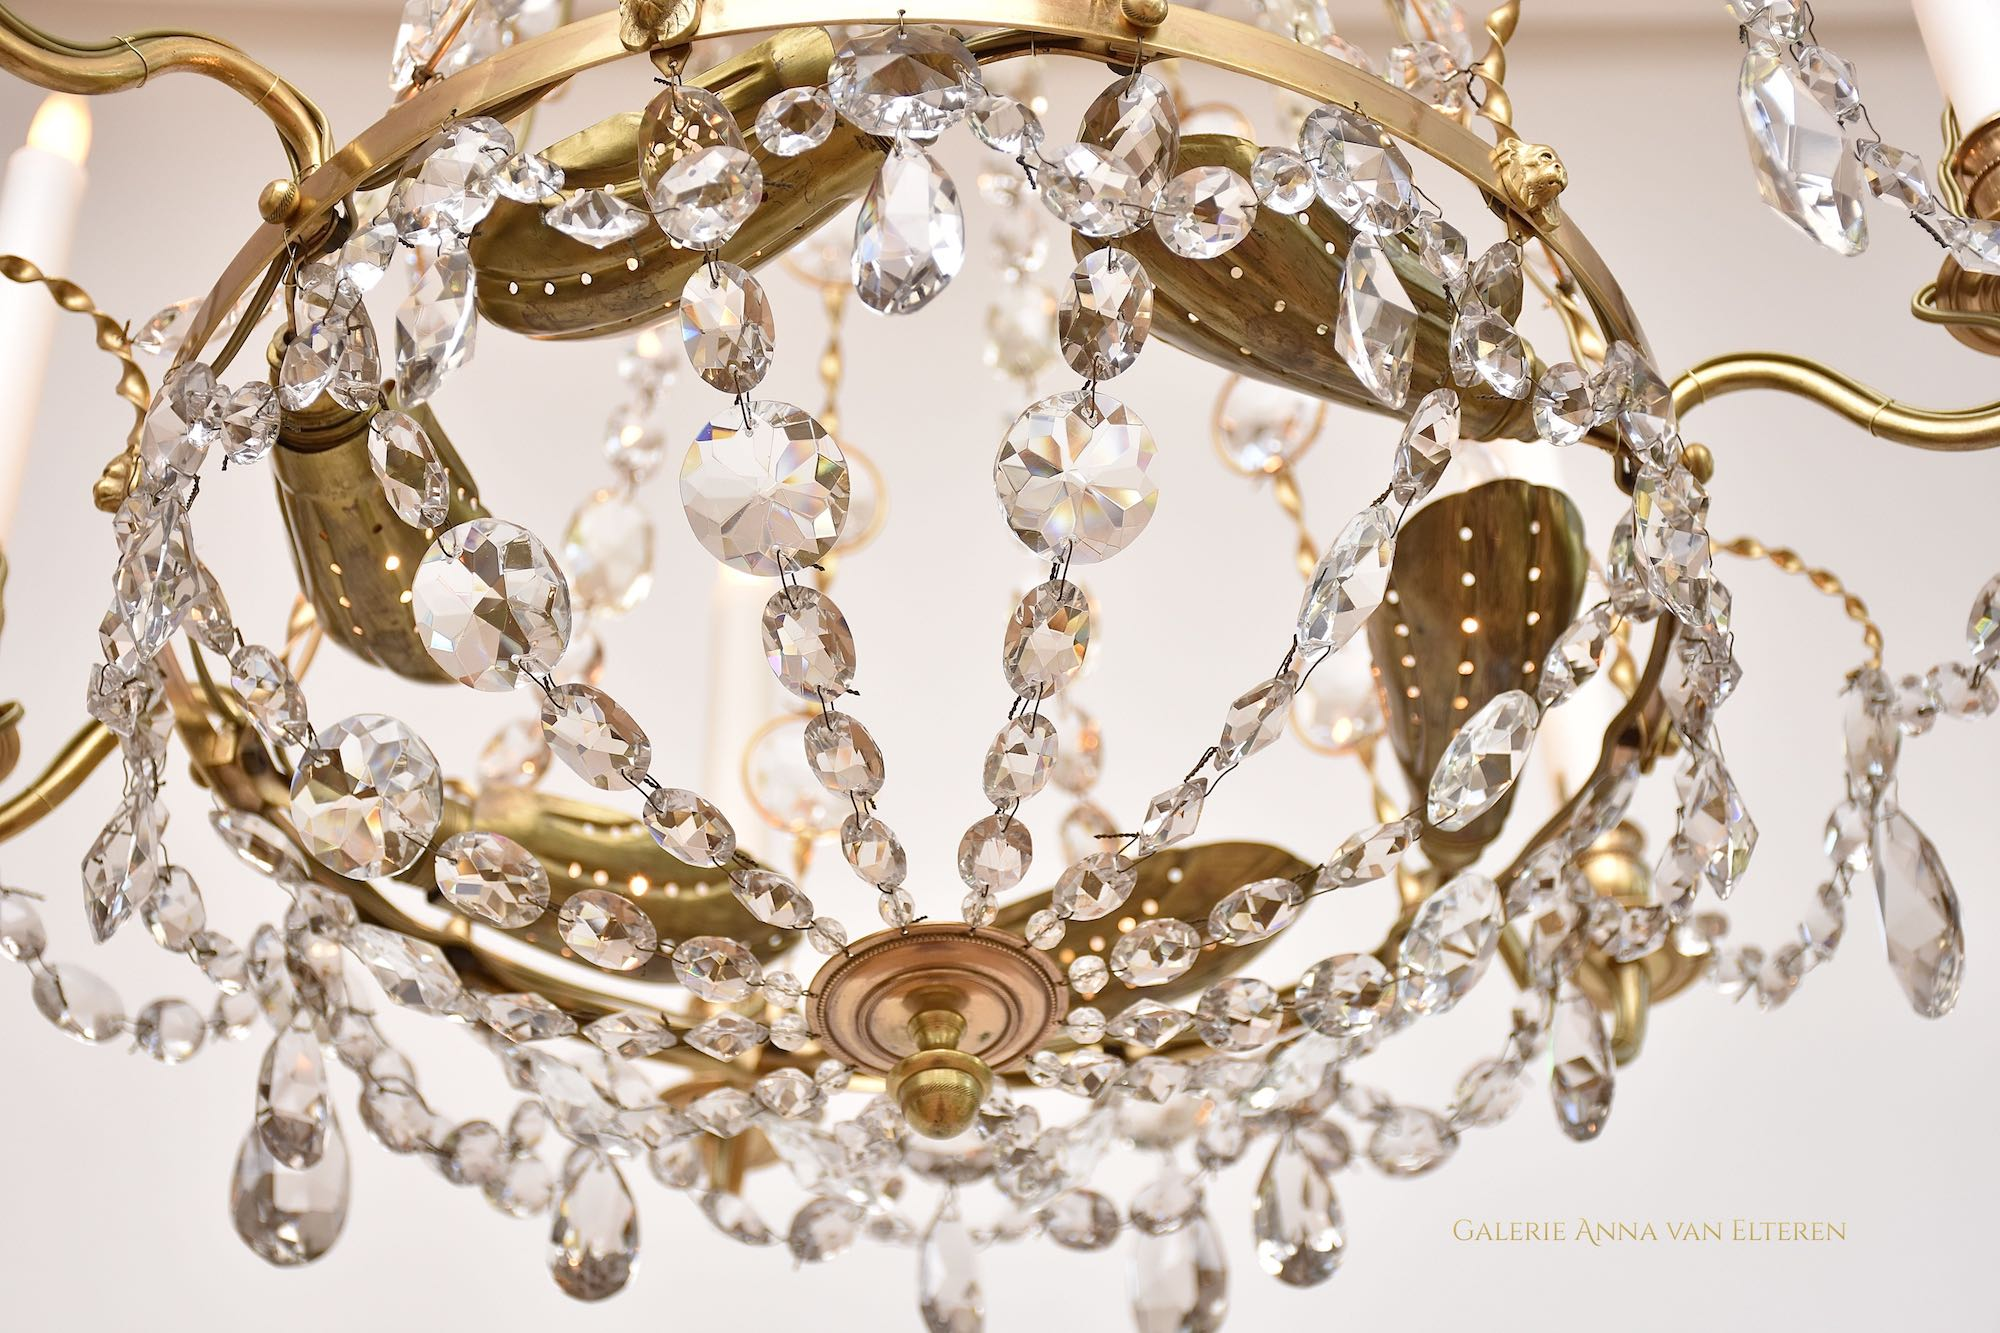 Two Swedish Gustavian style chandeliers